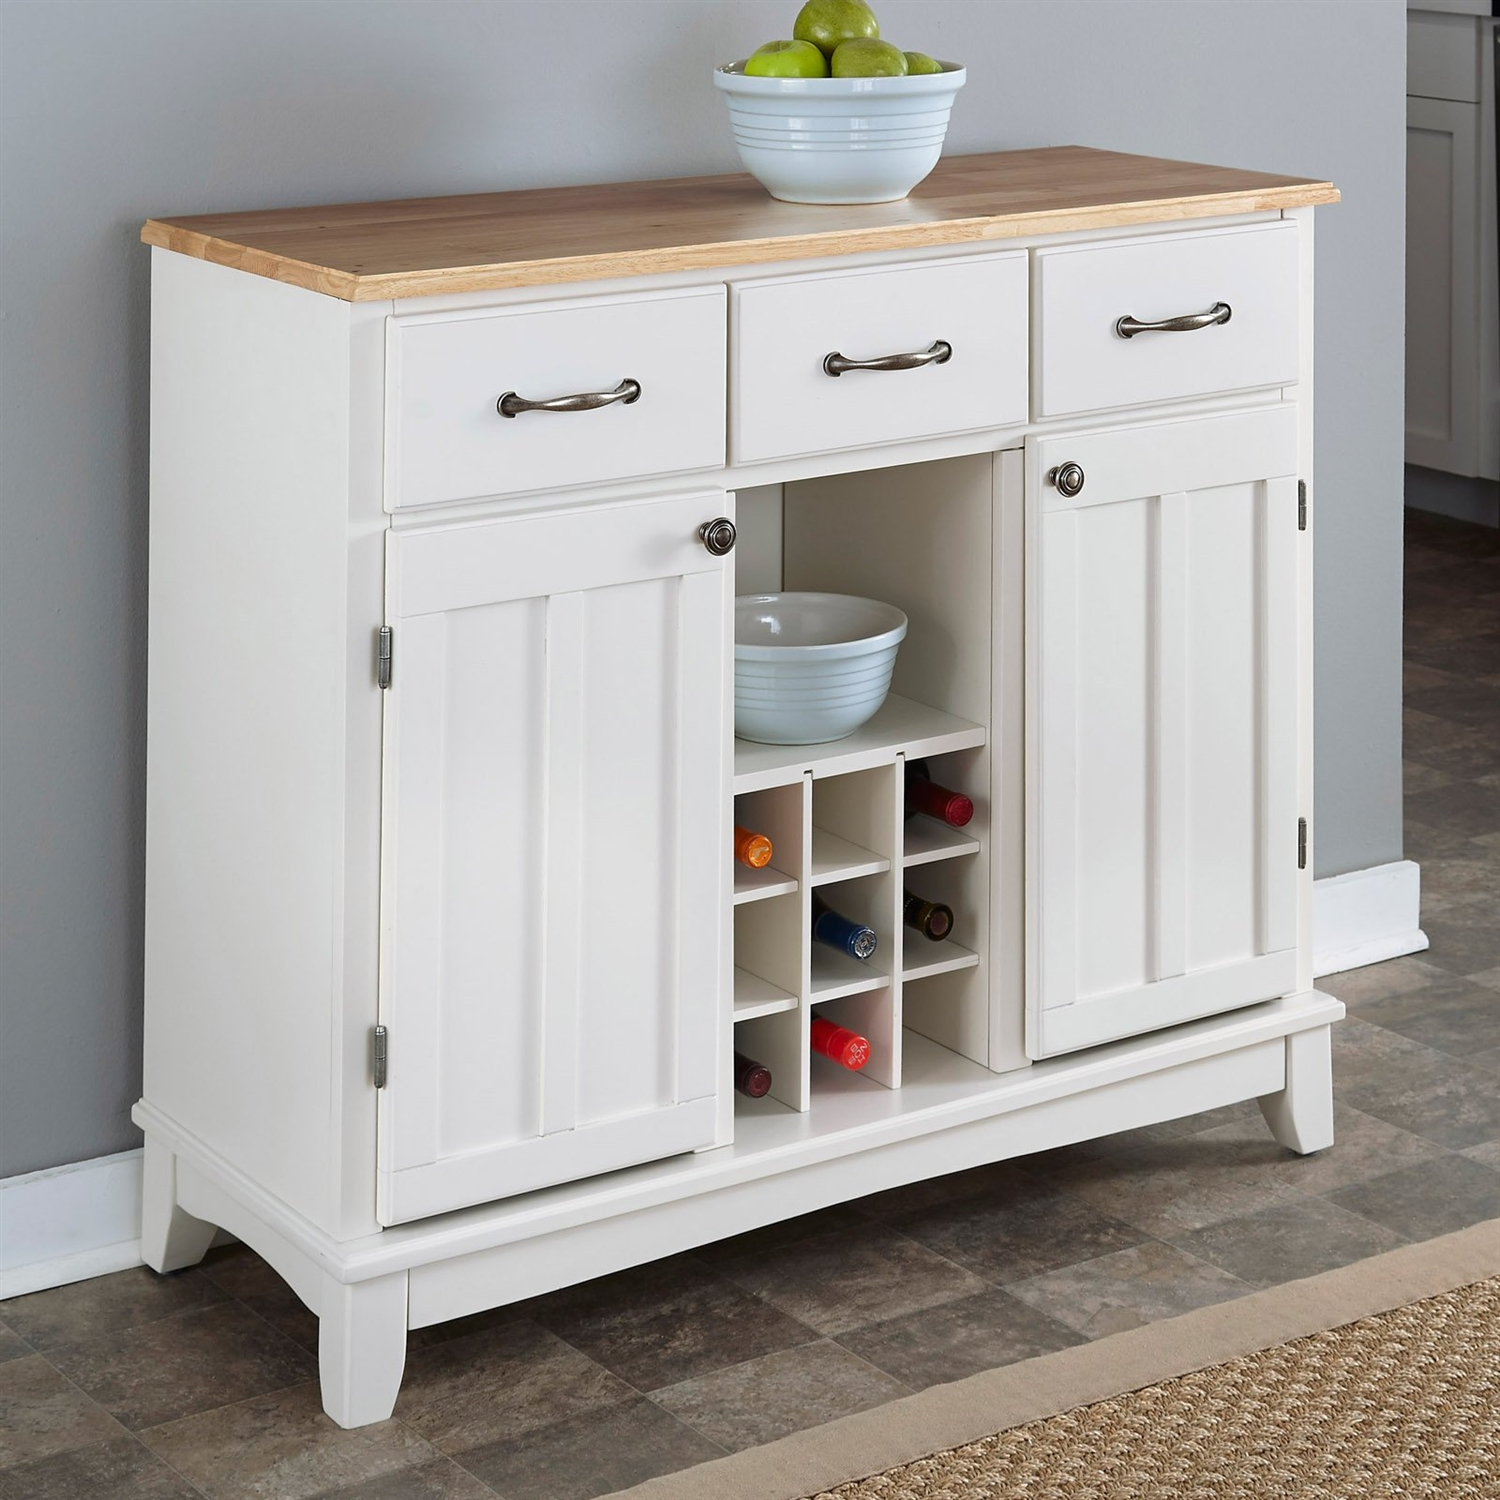 natural wood top kitchen island sideboard cabinet wine rack in white SOQHJPH